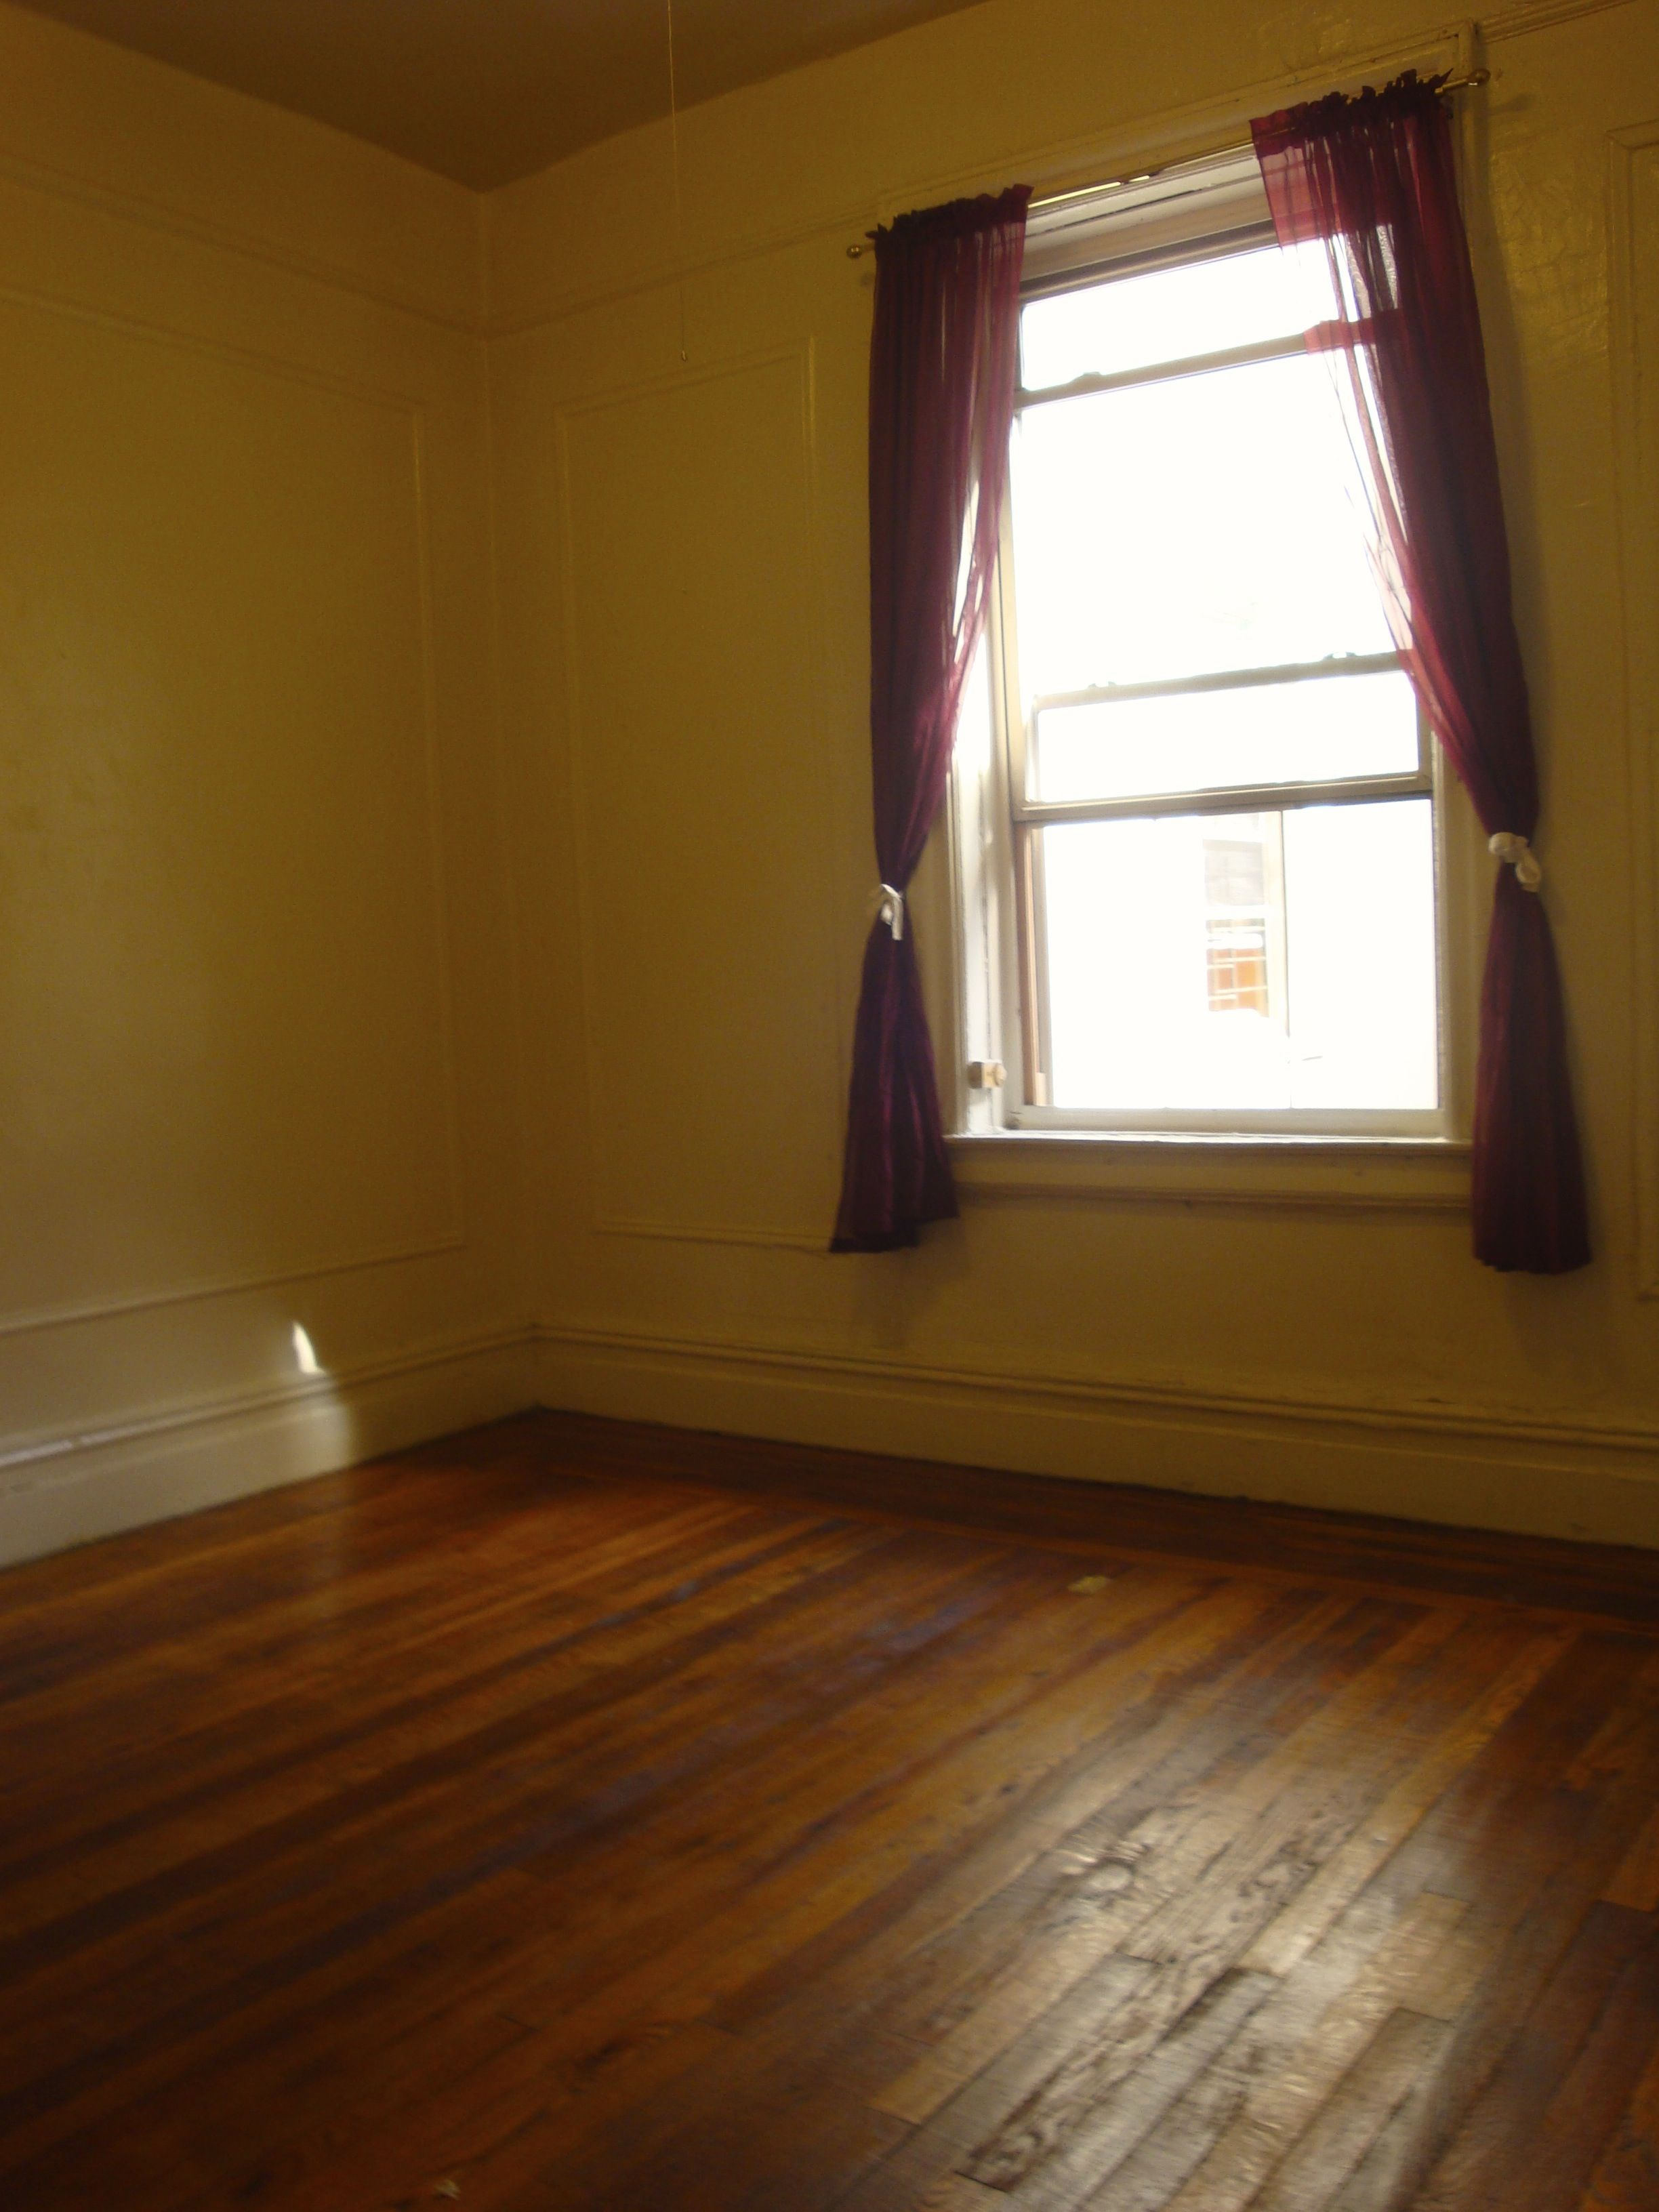 pinconvent ave. apartment on medium size room, unfurnished